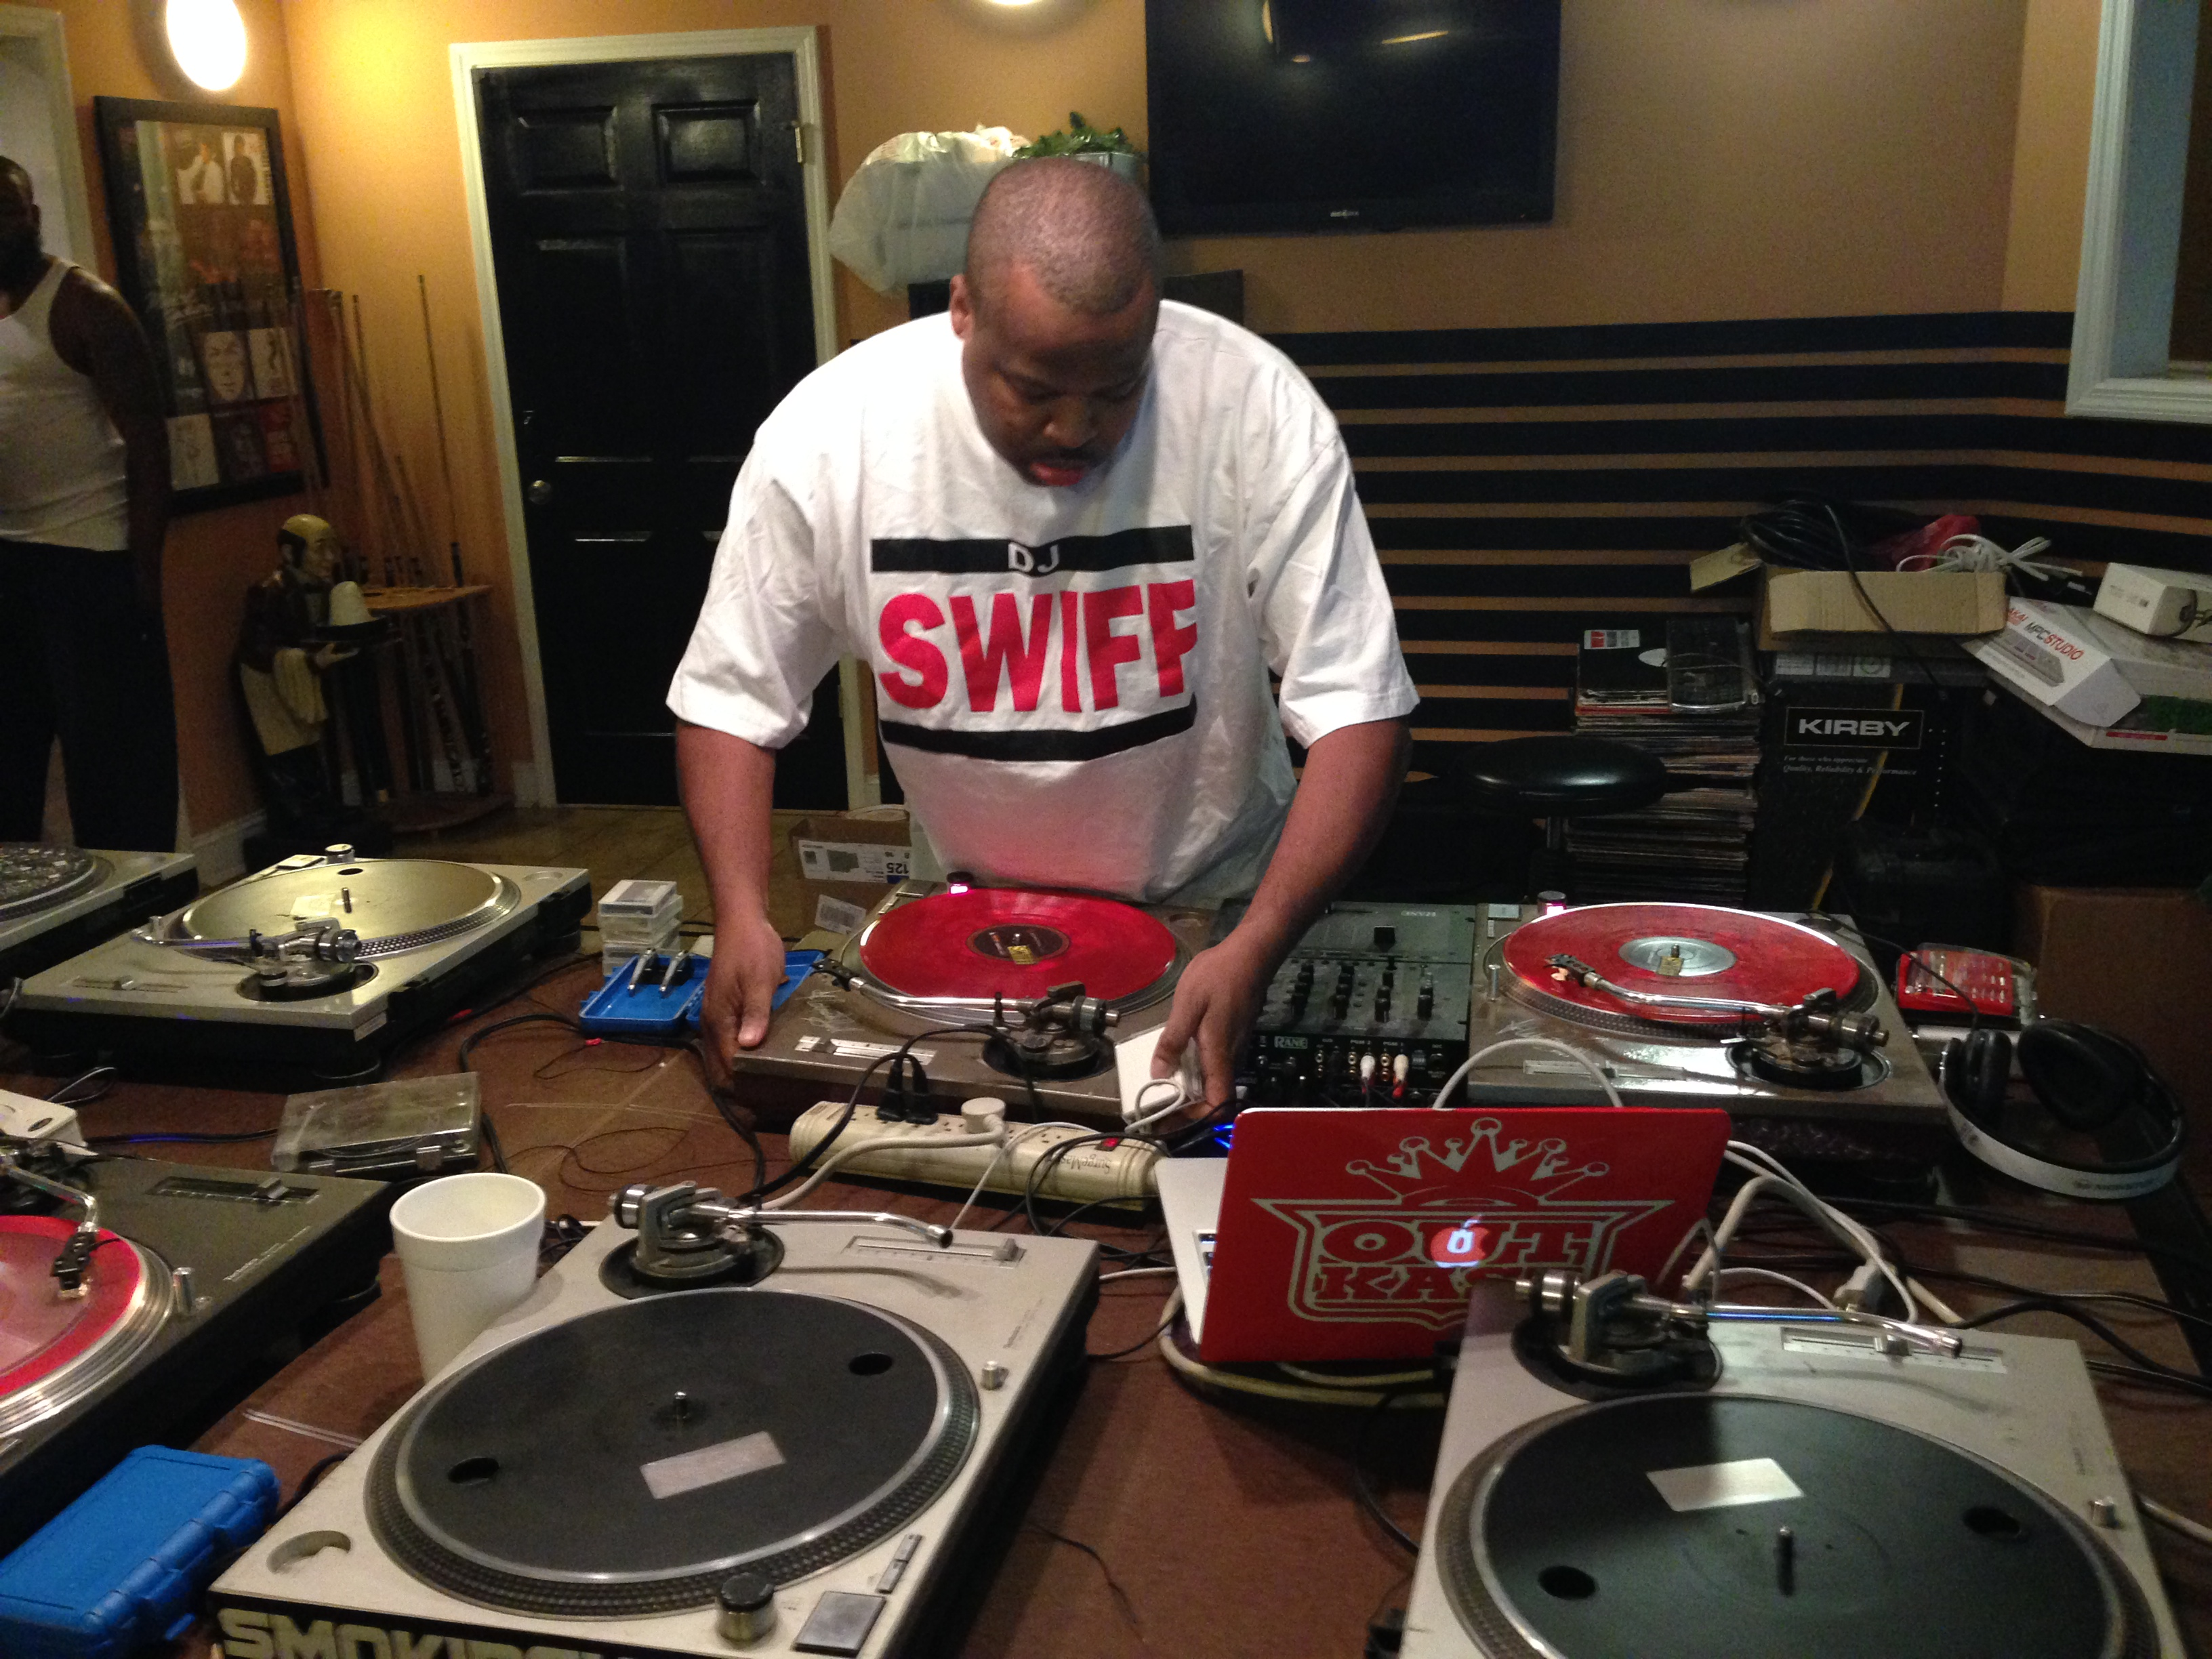 pcture of Dj Cutmaster Swiff of Outkast